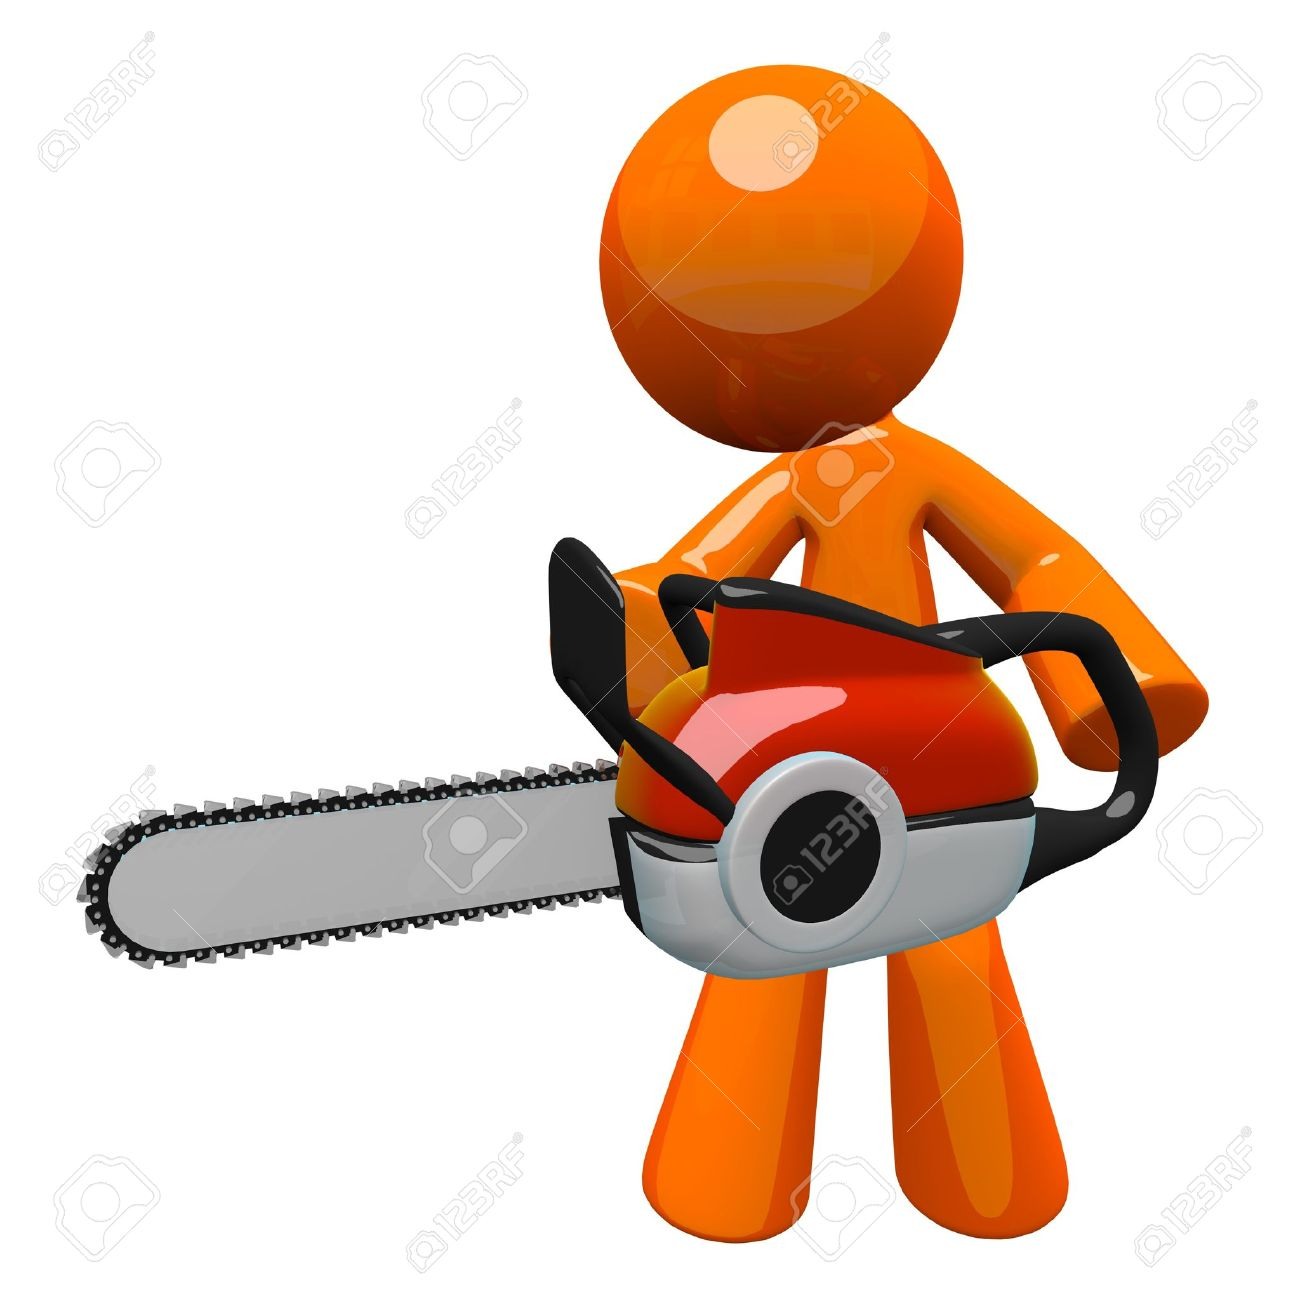 hight resolution of 1300x1300 chainsaw clipart simple